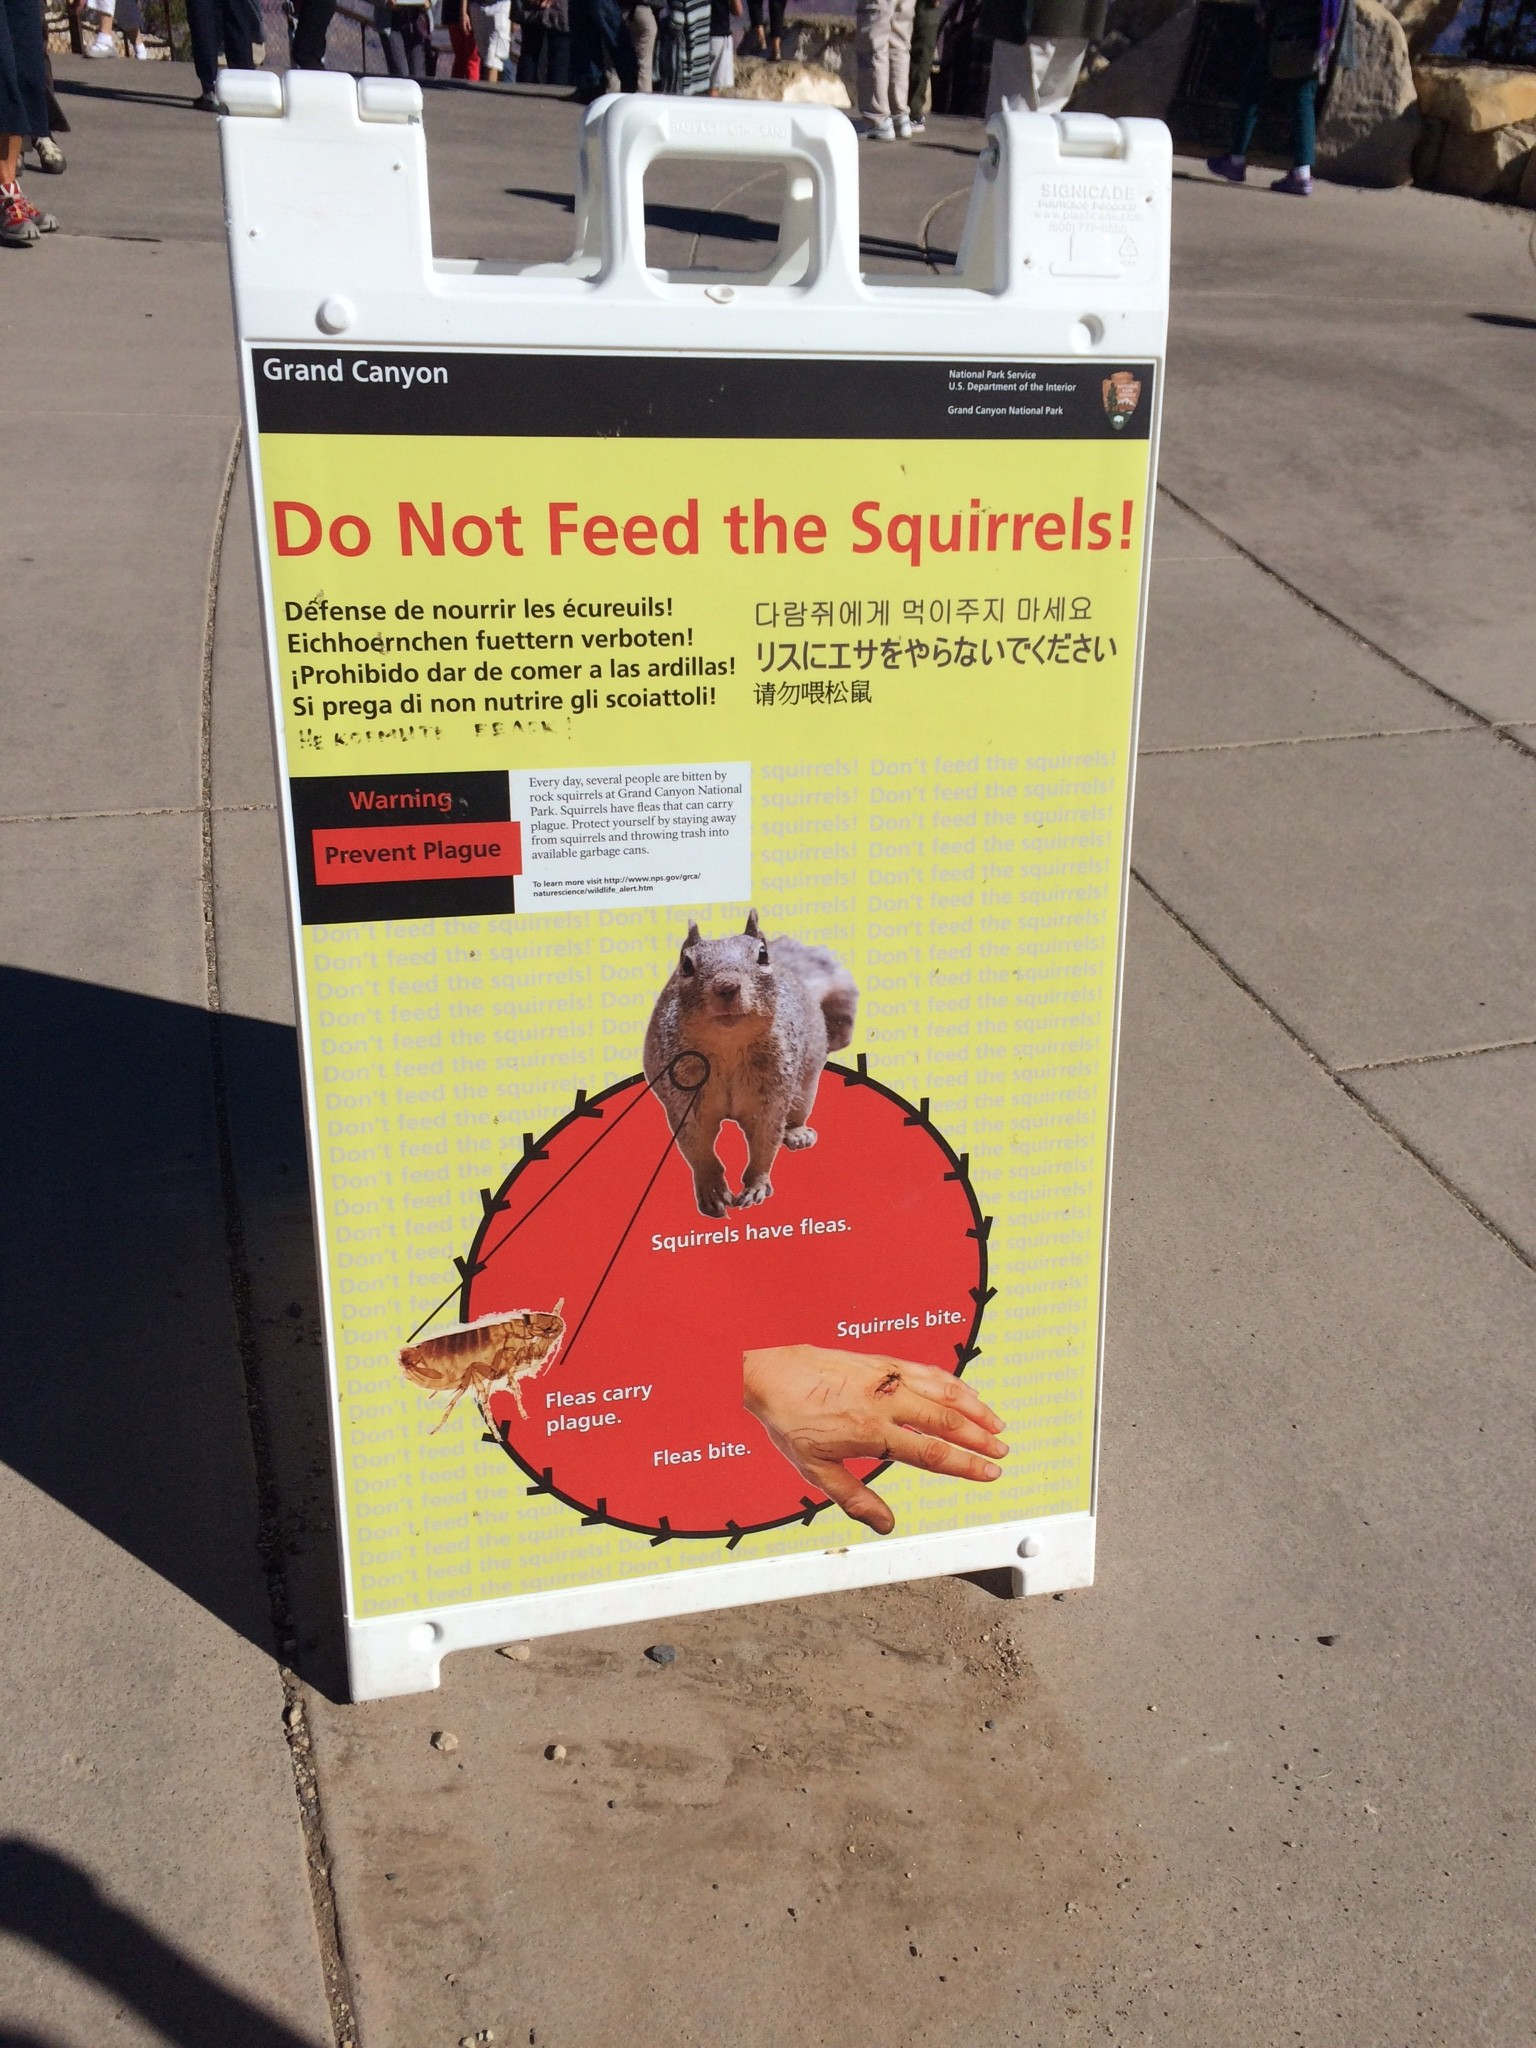 The plague squirrel sounds made us laugh.